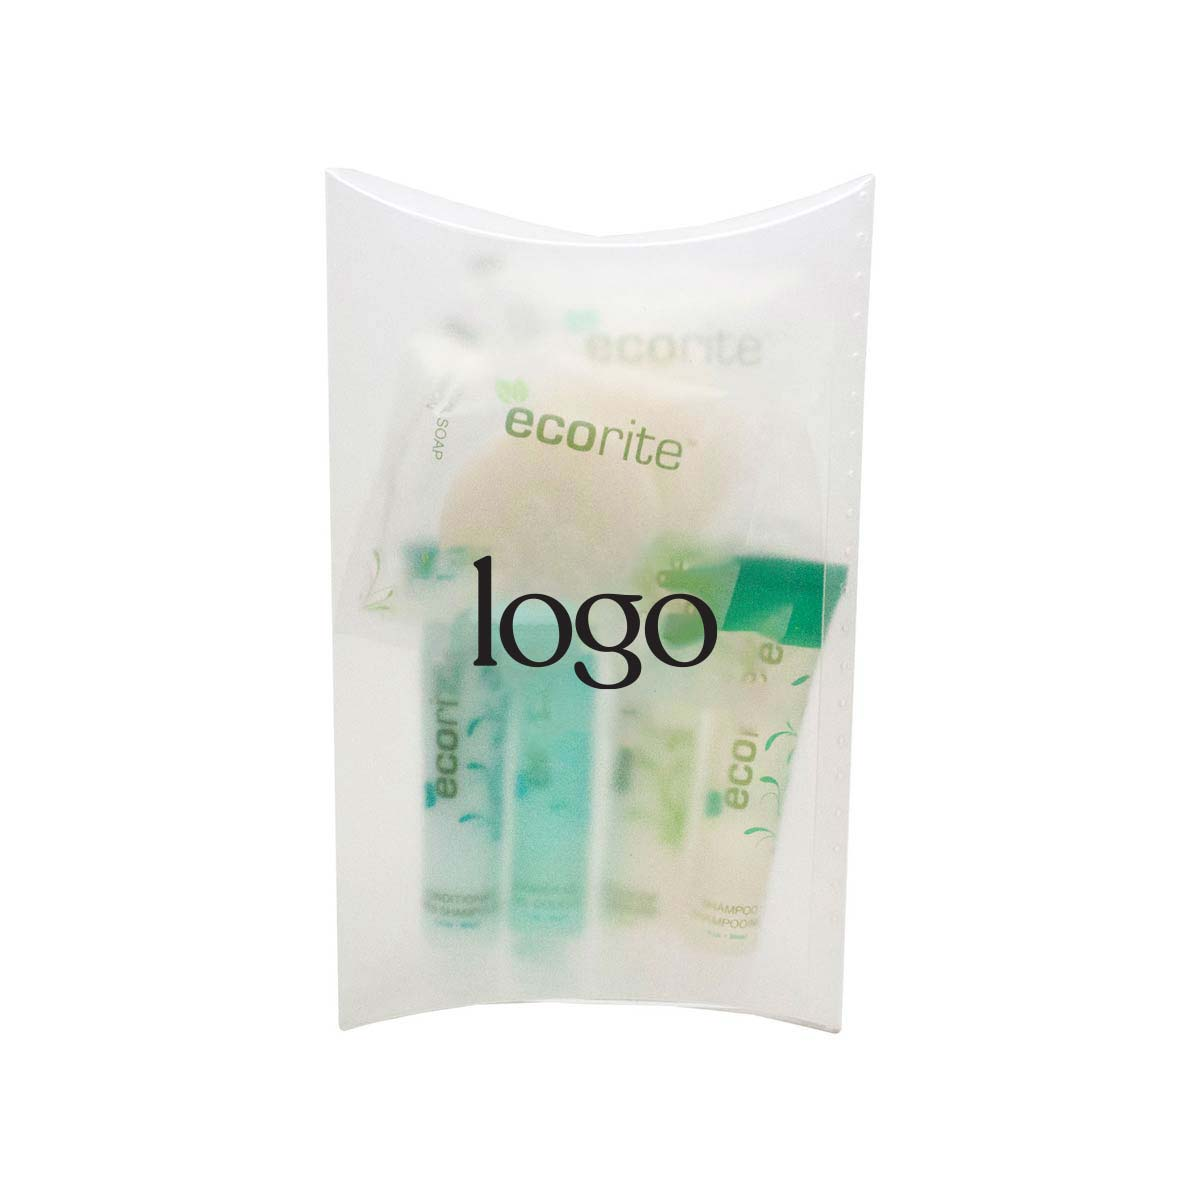 298536 eco amenity kit one color one location imprint on pillow box standard imprint colors